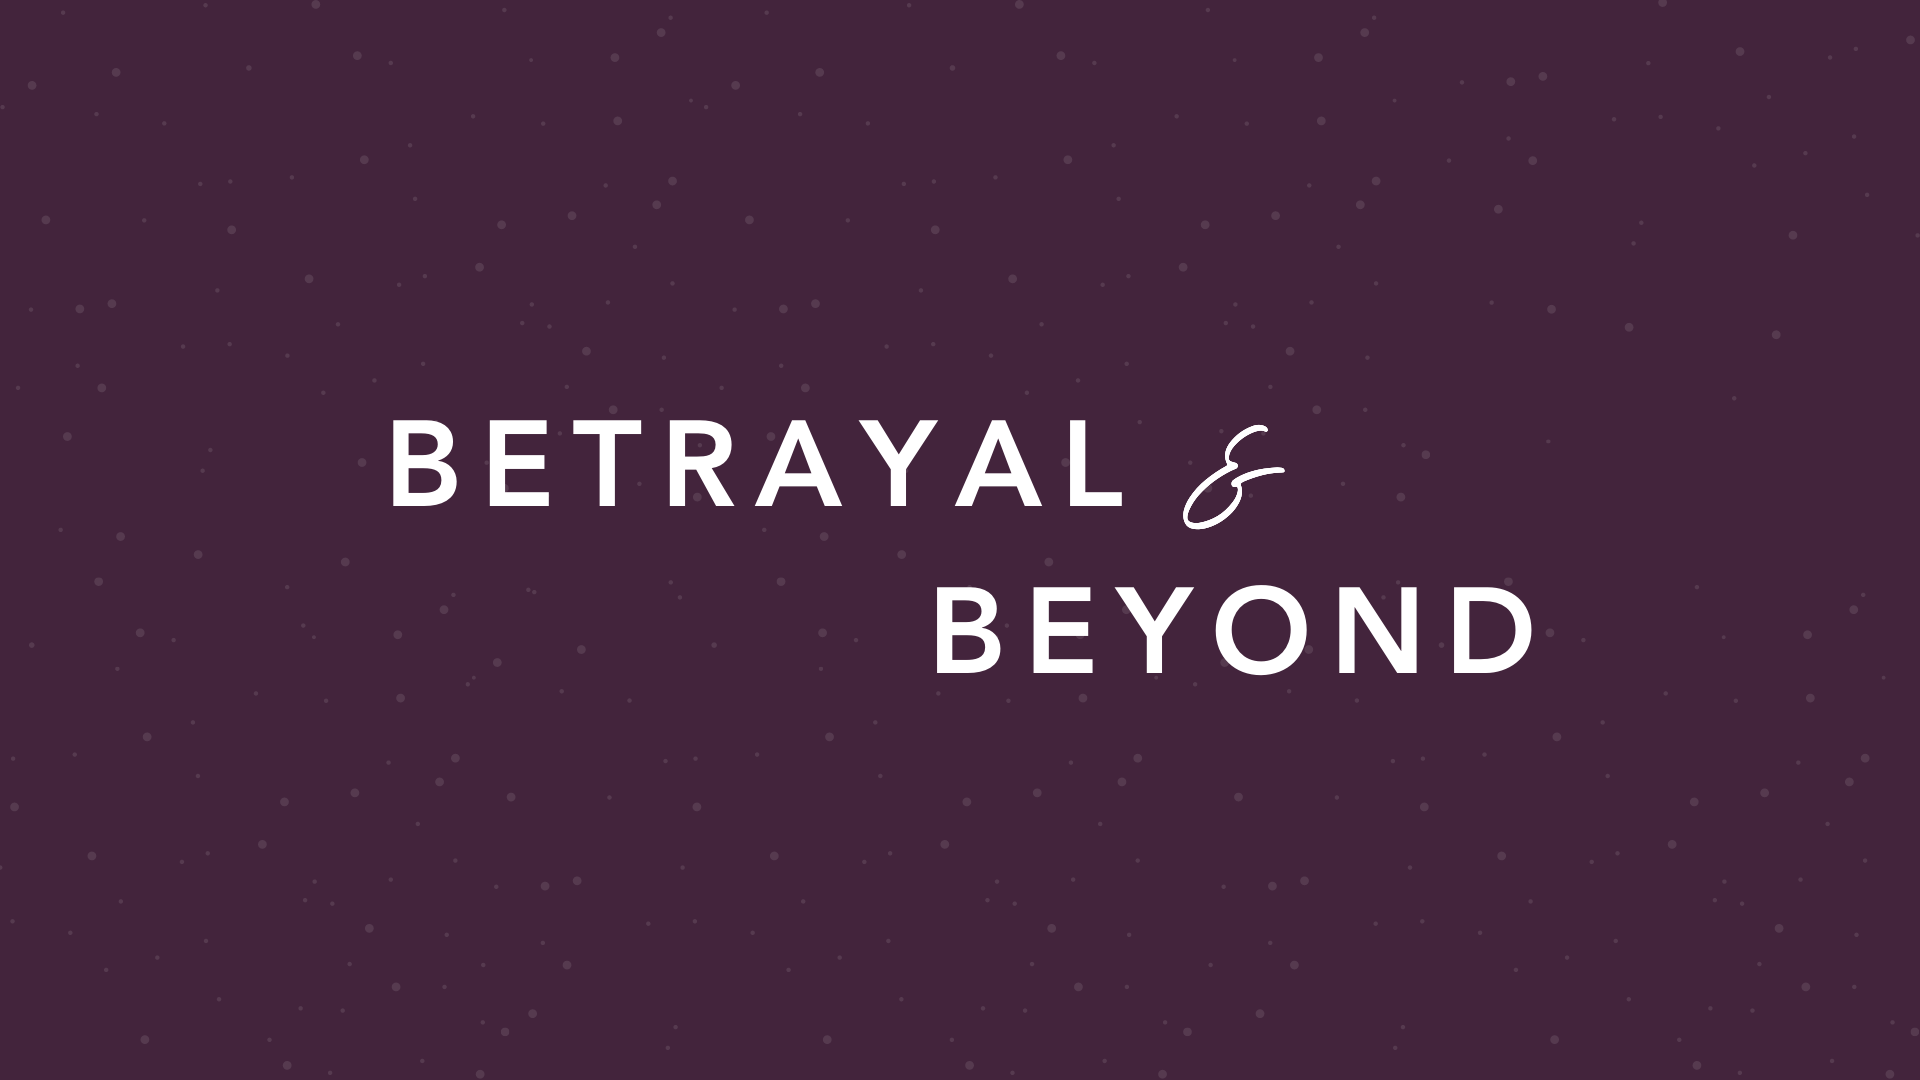 Betrayal_and_Beyond image